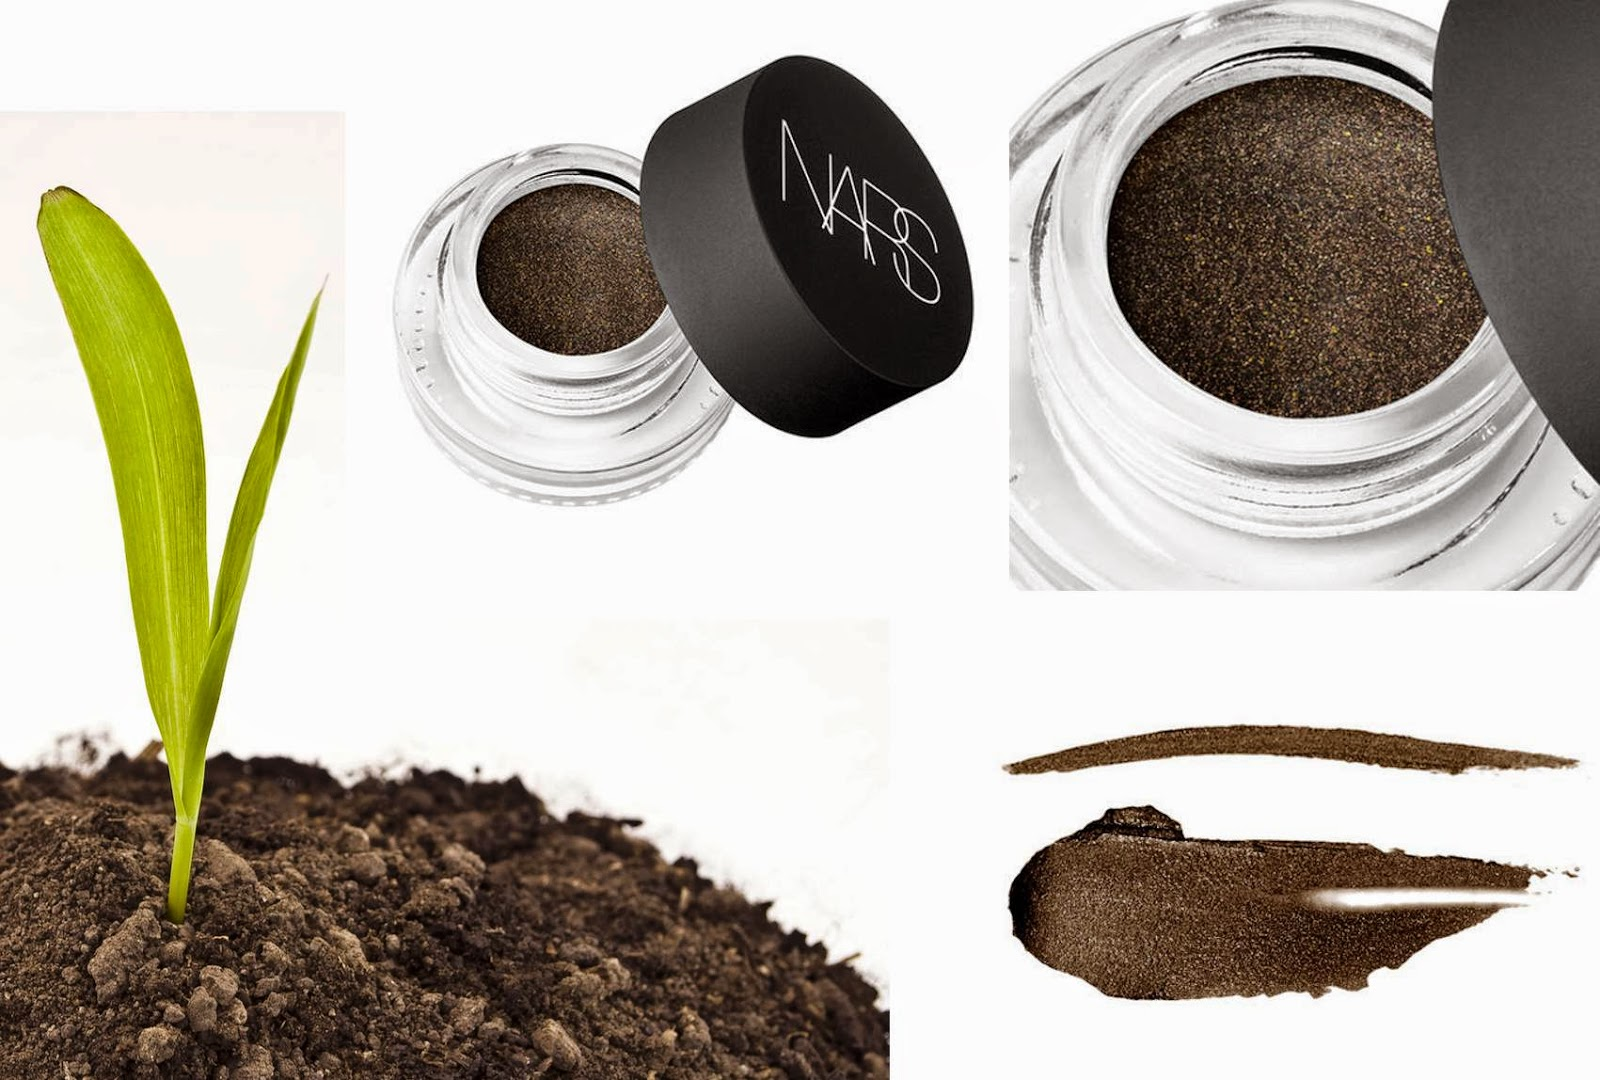 nars_baalbek_eye_paint_makeup_summer_collection_2014